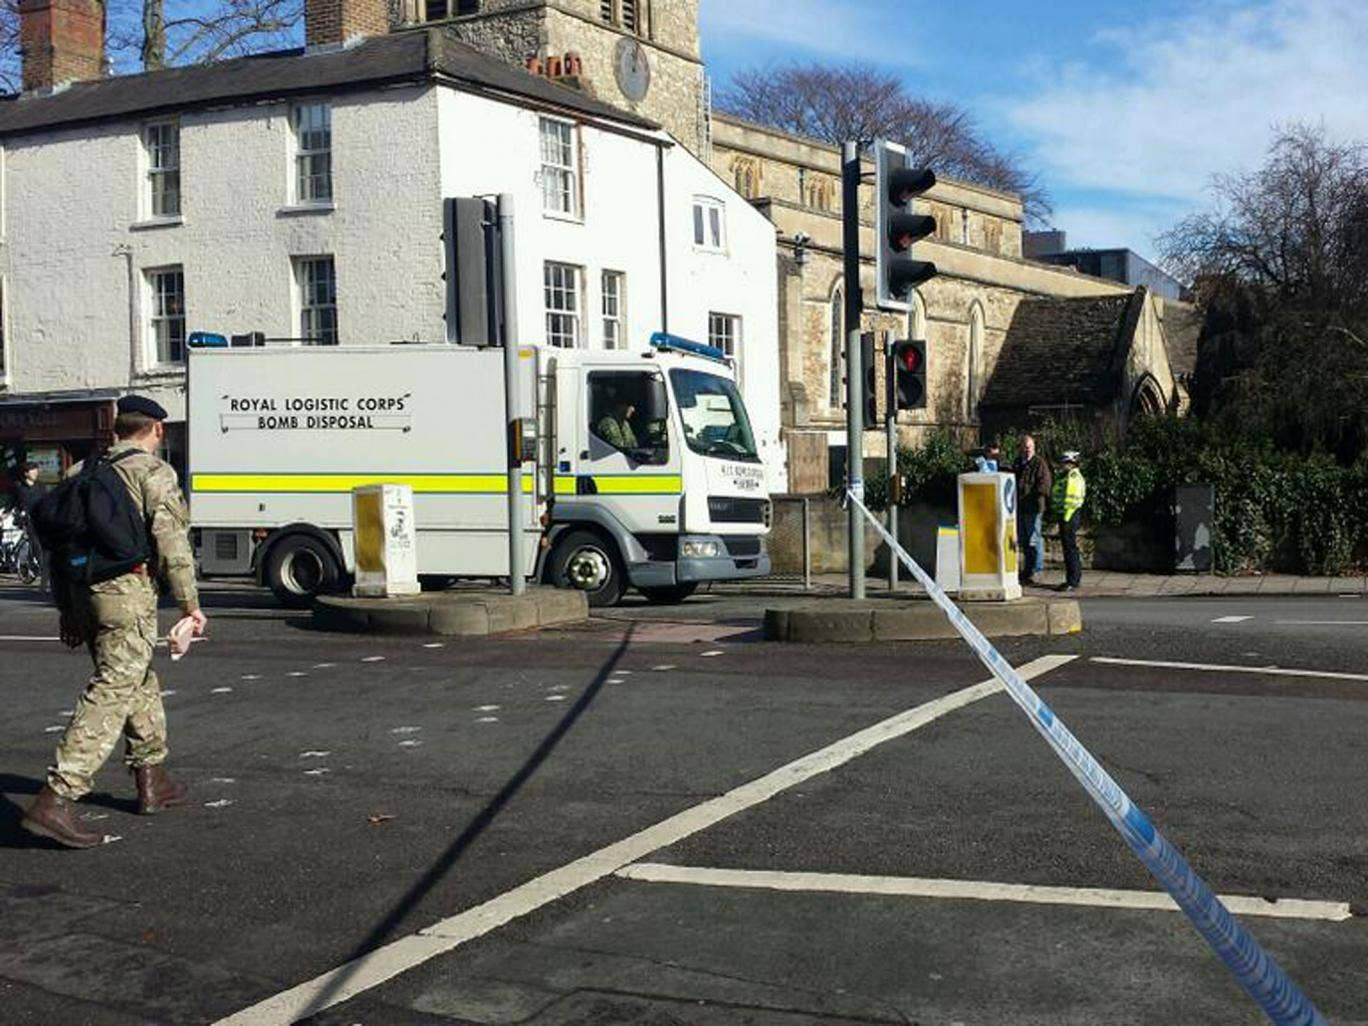 A bomb disposal unit deployed to investigate one of the 'suspicious packages' in Oxford, which the Ministry of Defence said was routine procedure